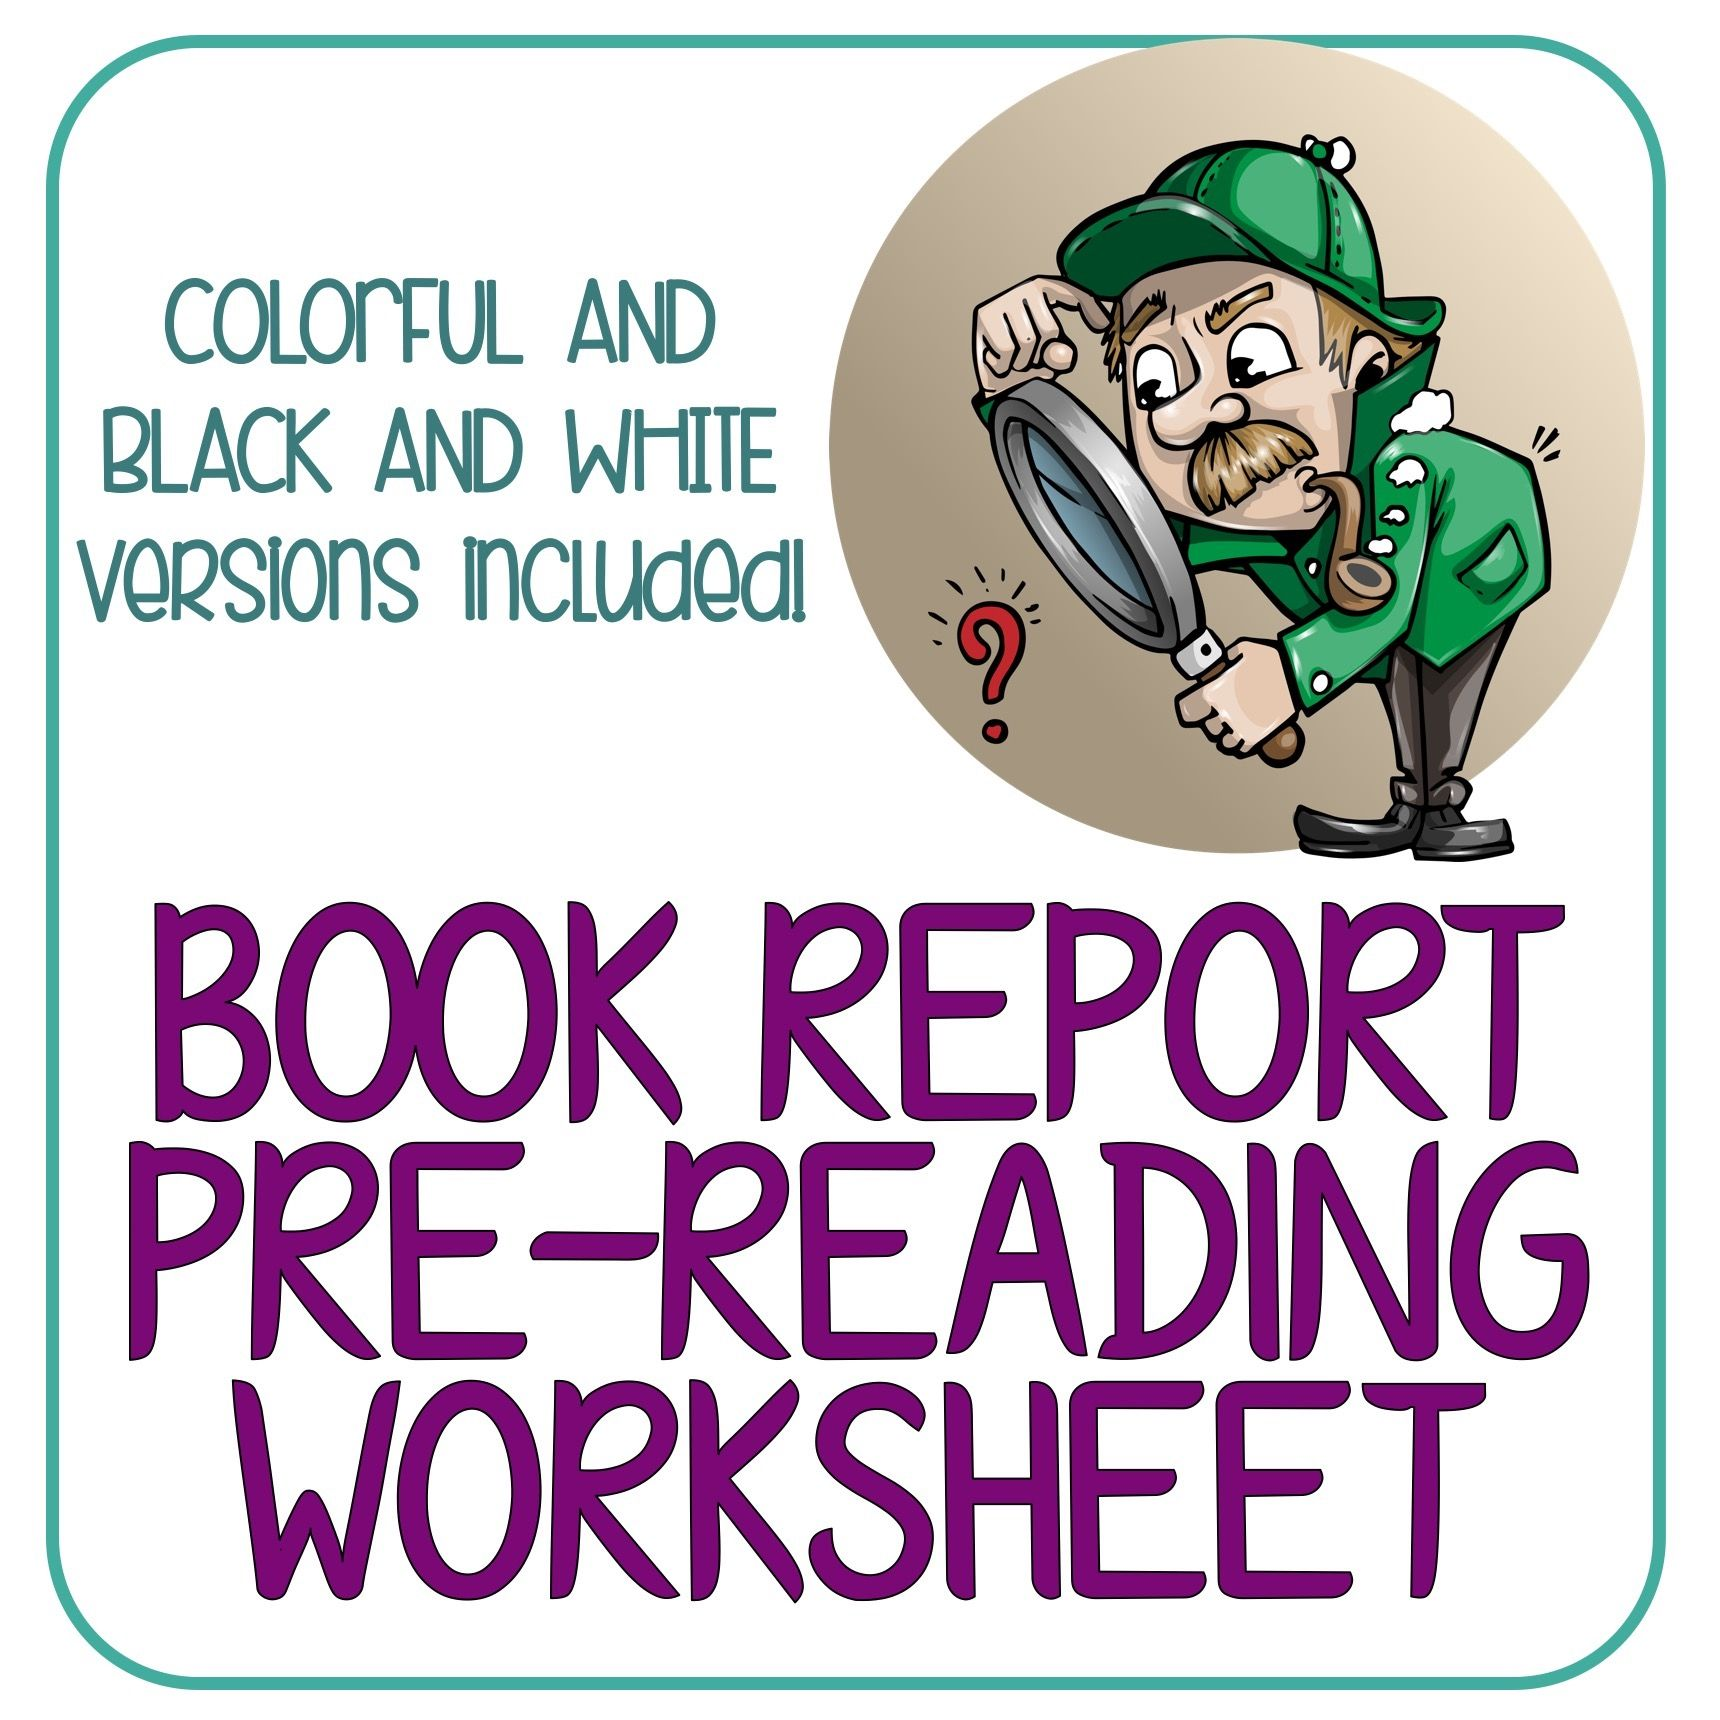 Book Report Pre Reading Worksheet